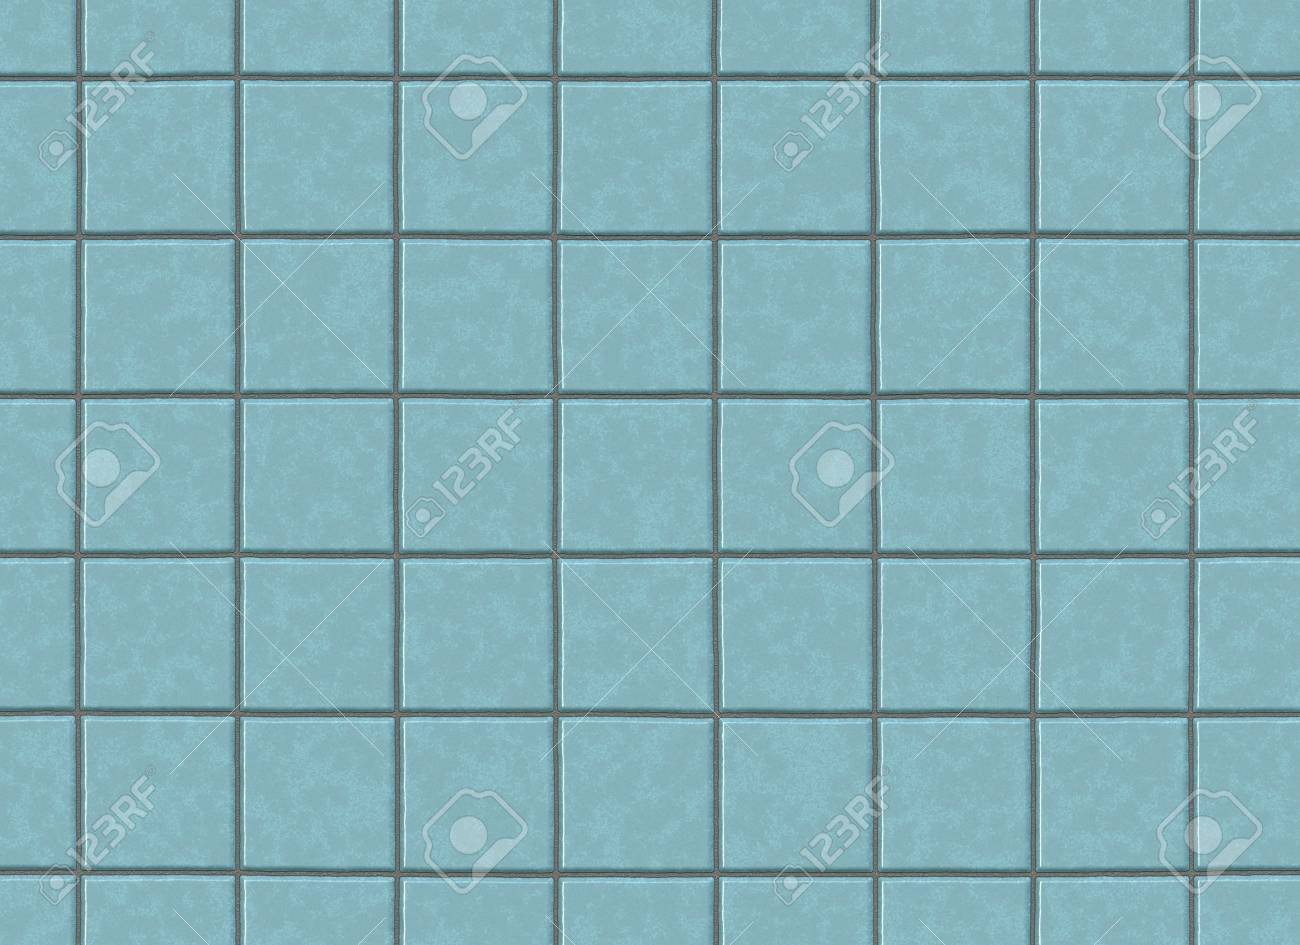 Many Square Ceramic Tile. Pattern Texture Stock Photo, Picture And ...